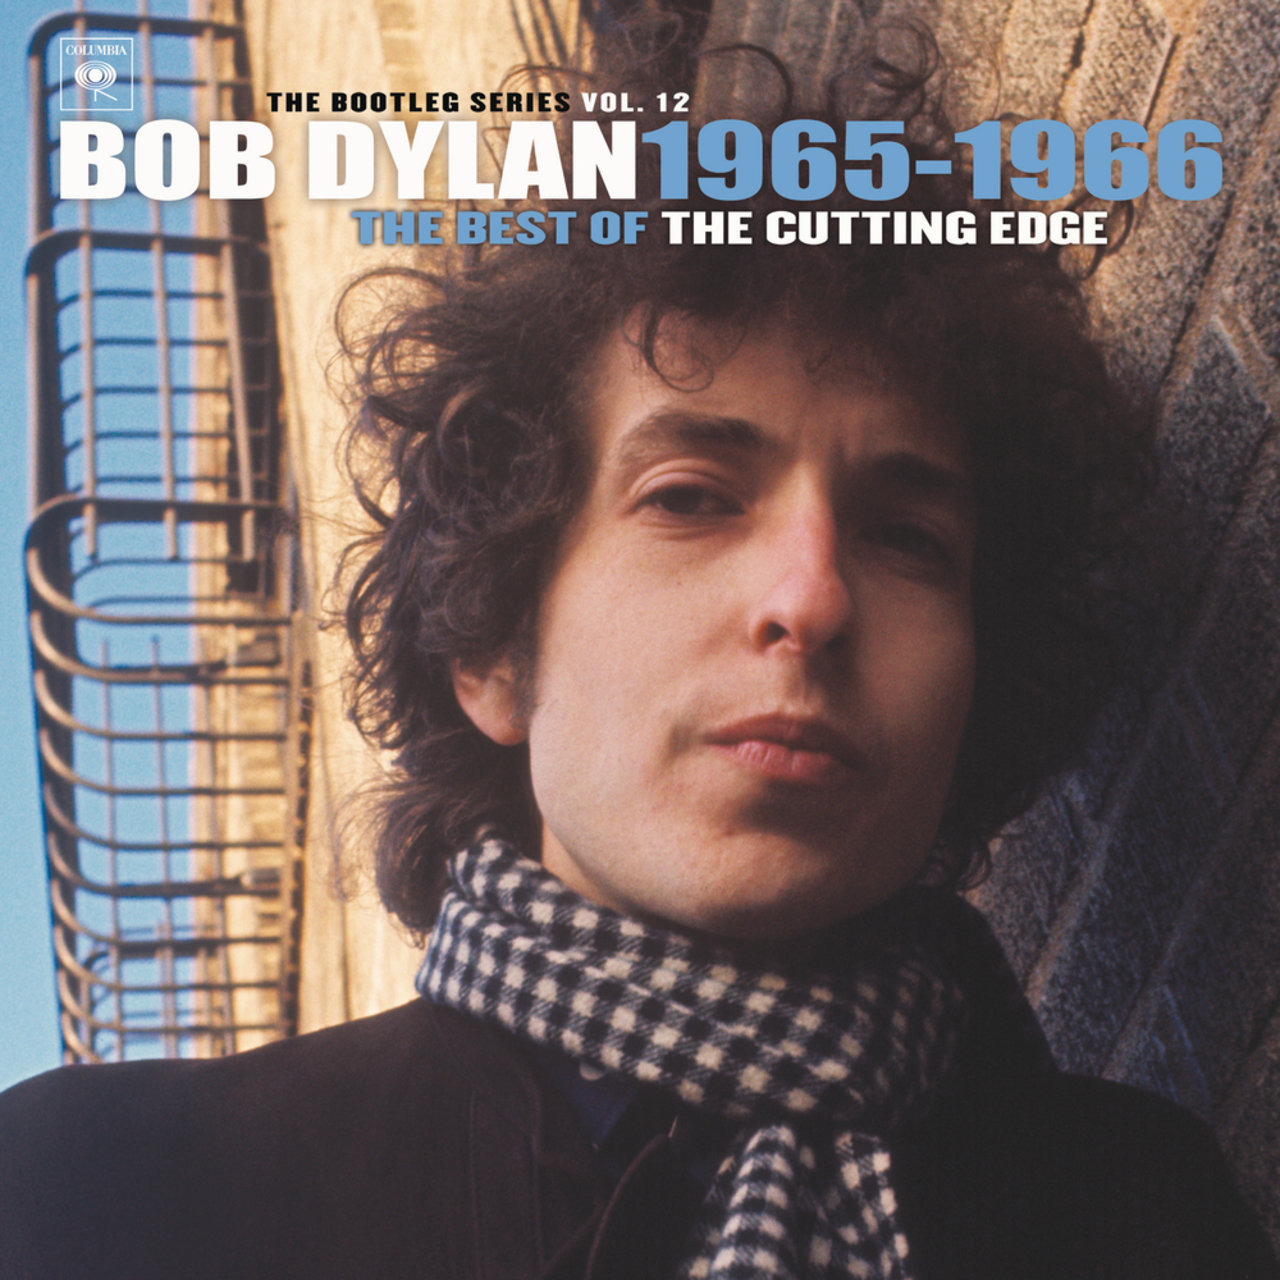 The Best of The Cutting Edge 1965-1966: The Bootleg Series, Vol. 12